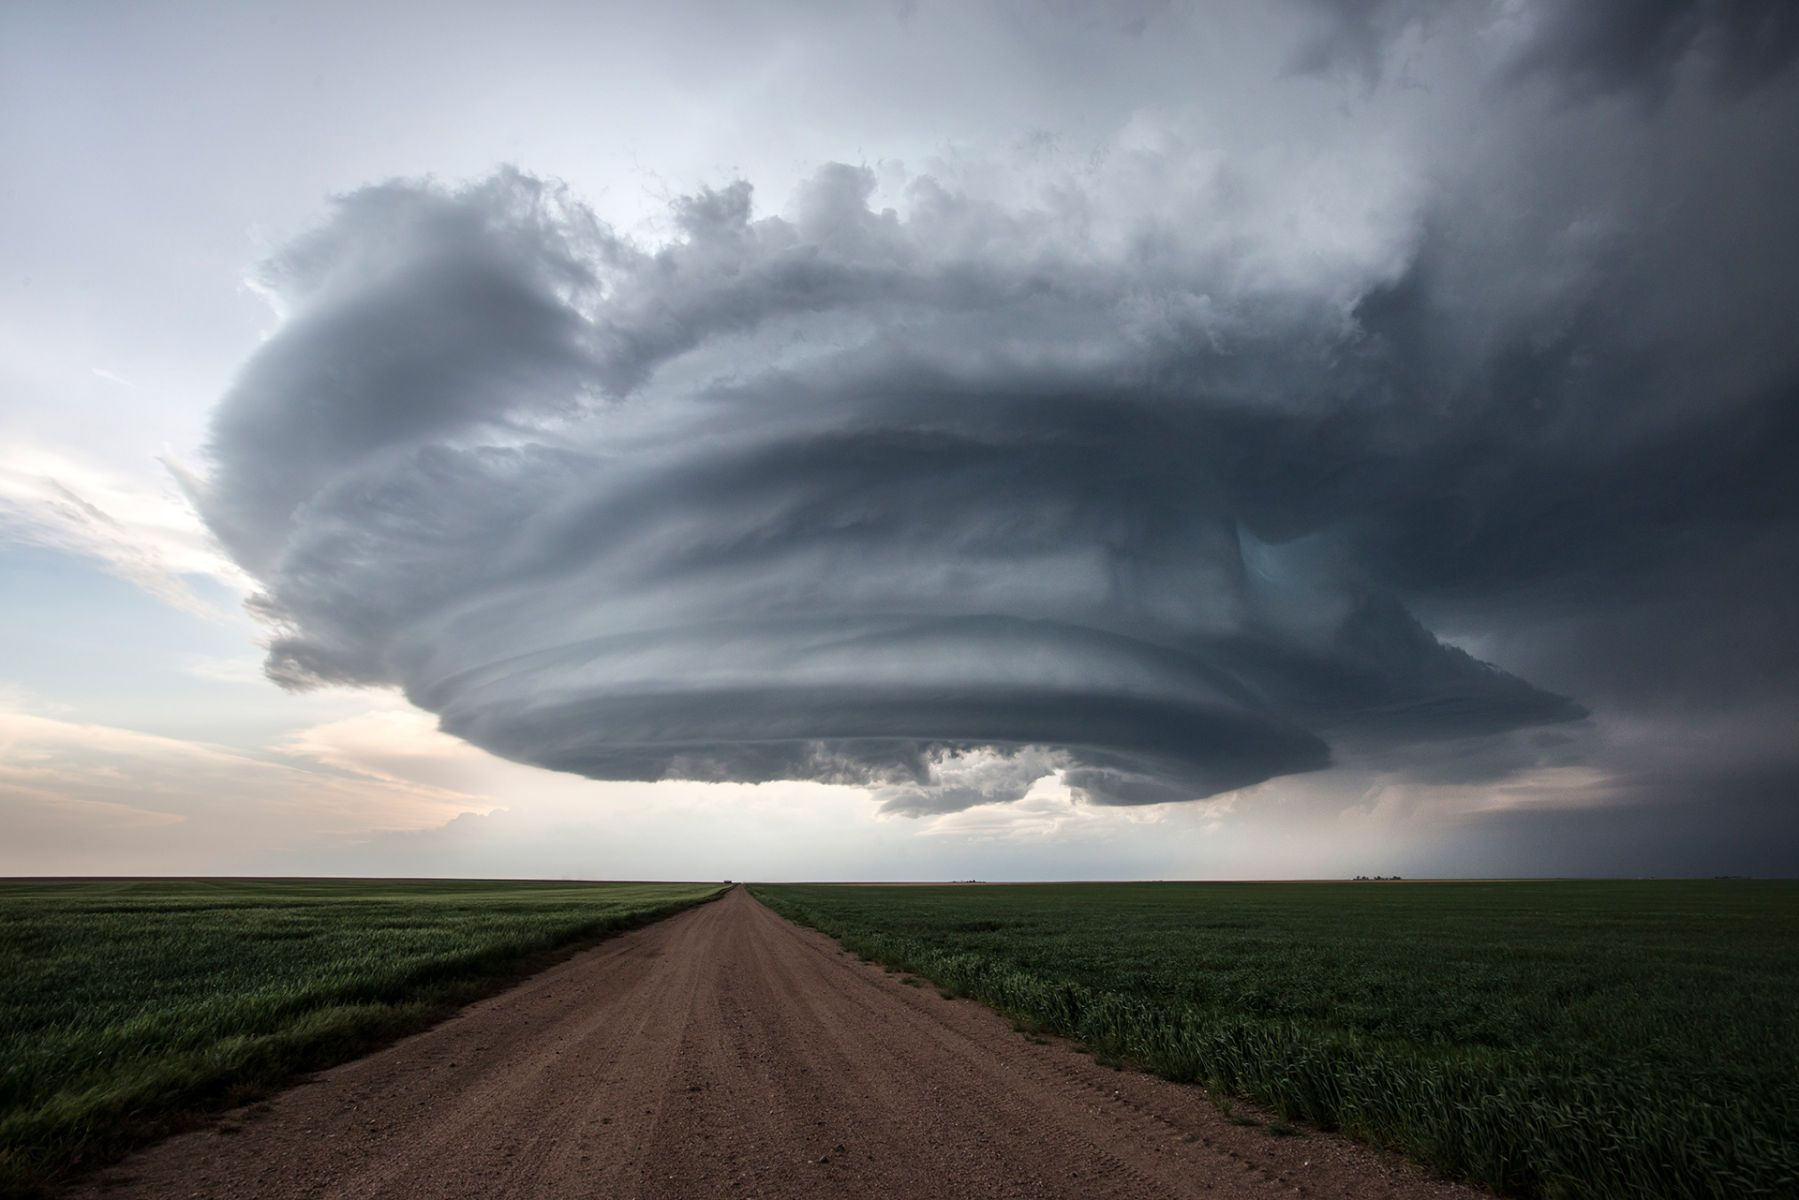 May 28, 2013 - Ovid, Colorado Supercell